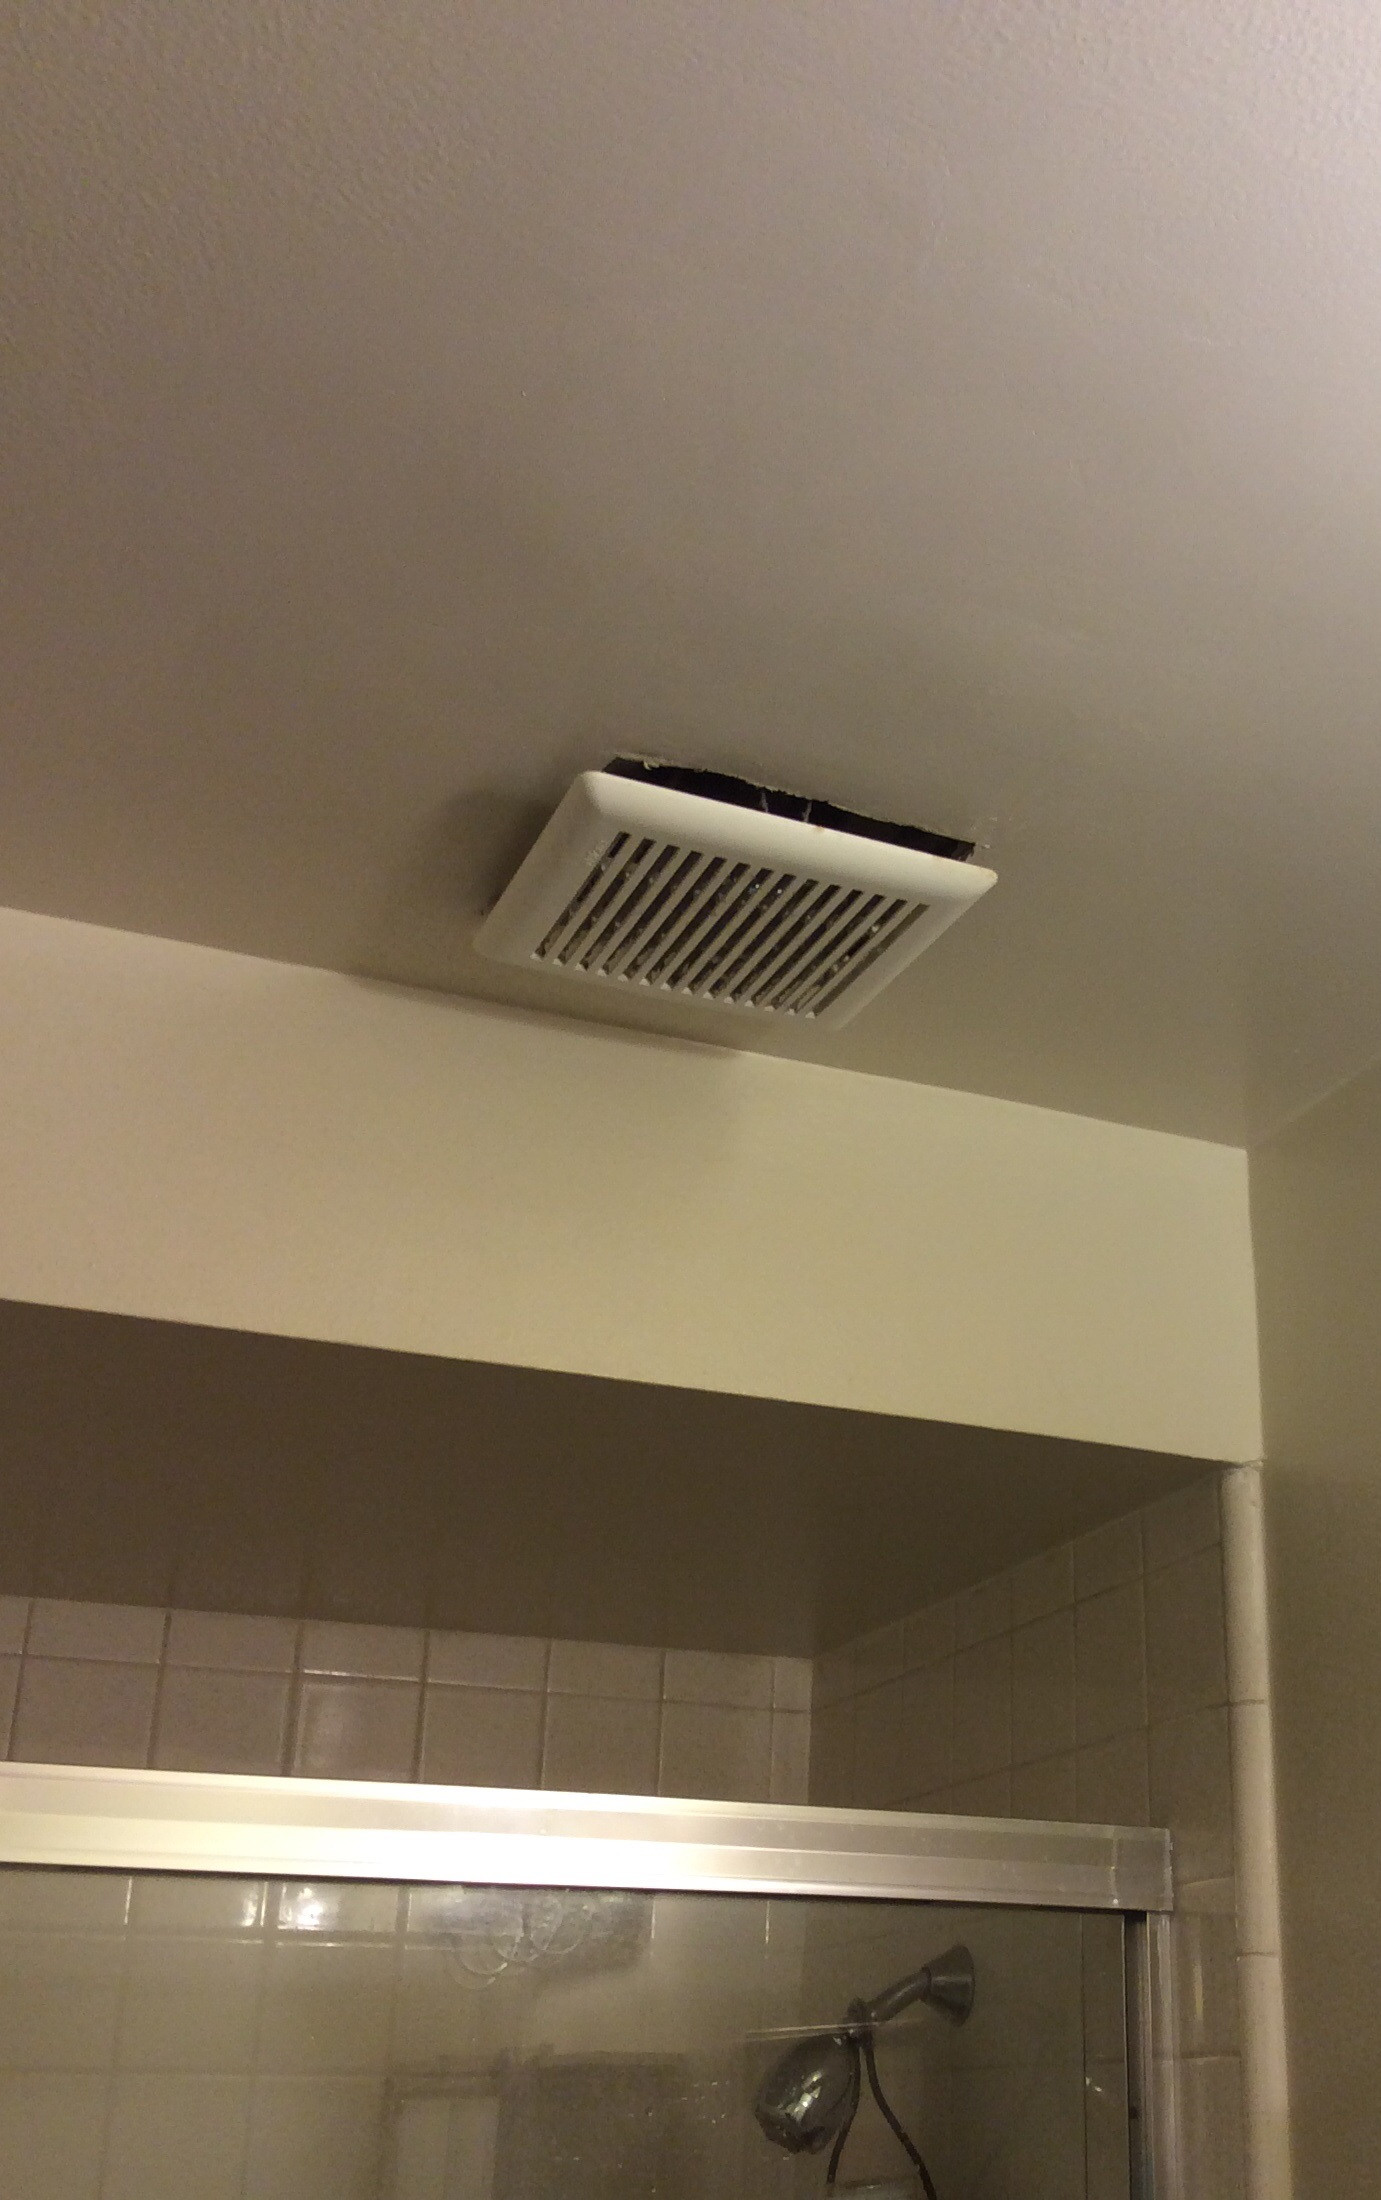 Is It Normal For An Exhaust Fan Cover To Hang Below The Finished Ceiling Home Improvement Stack Exchange